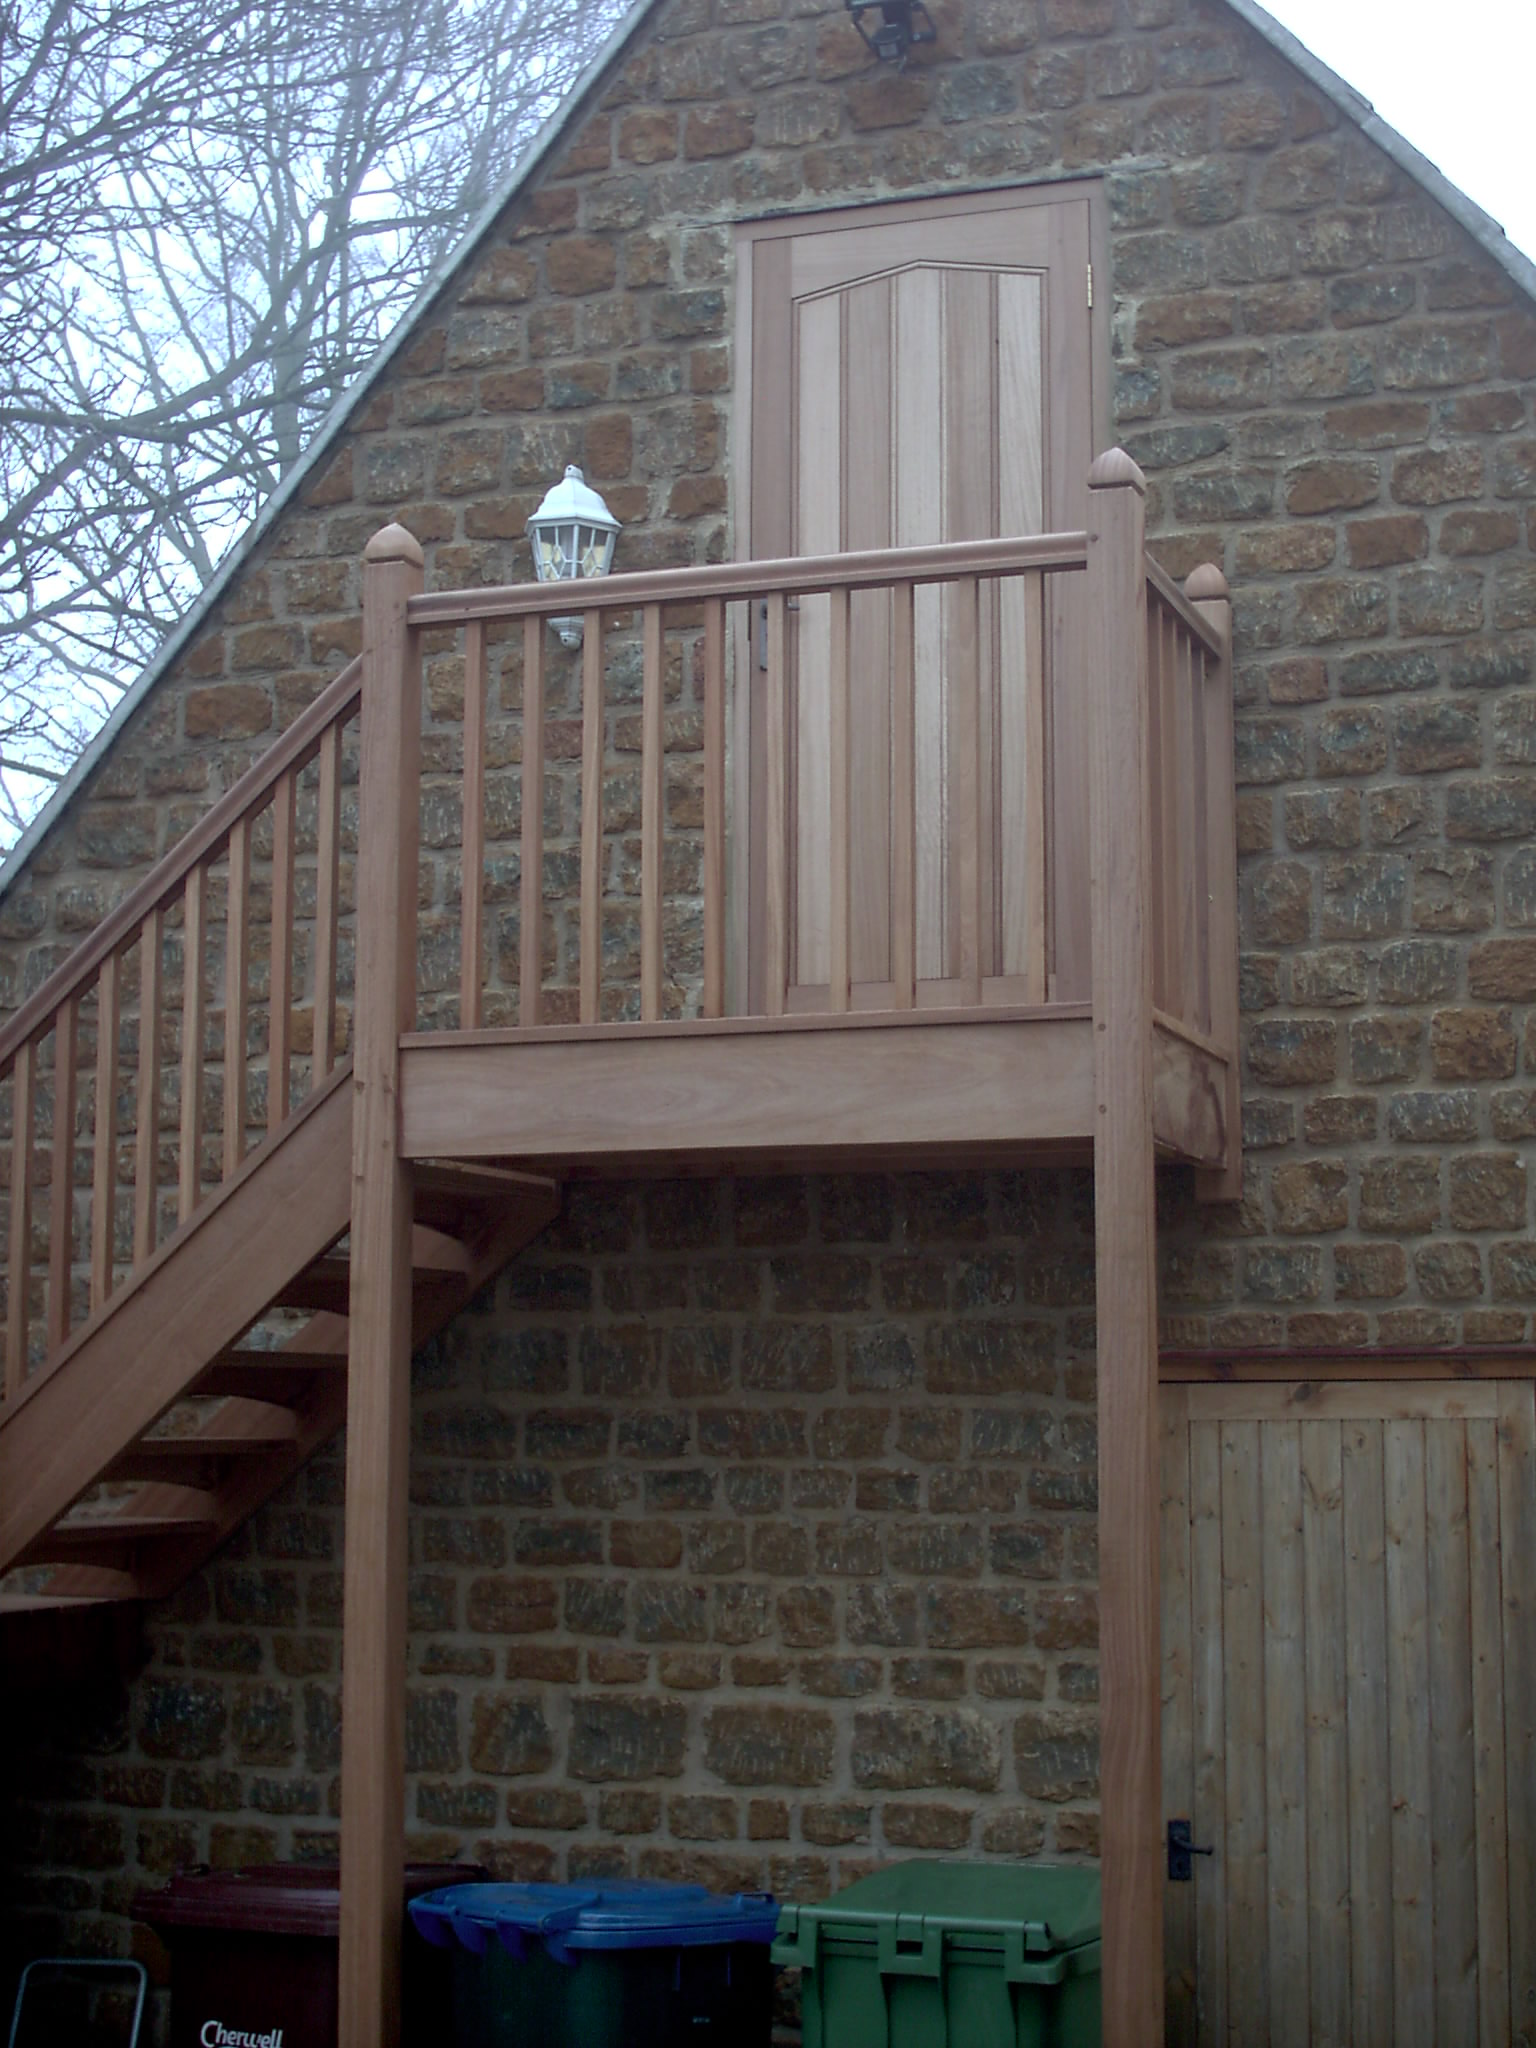 Exterior Staircase and Door